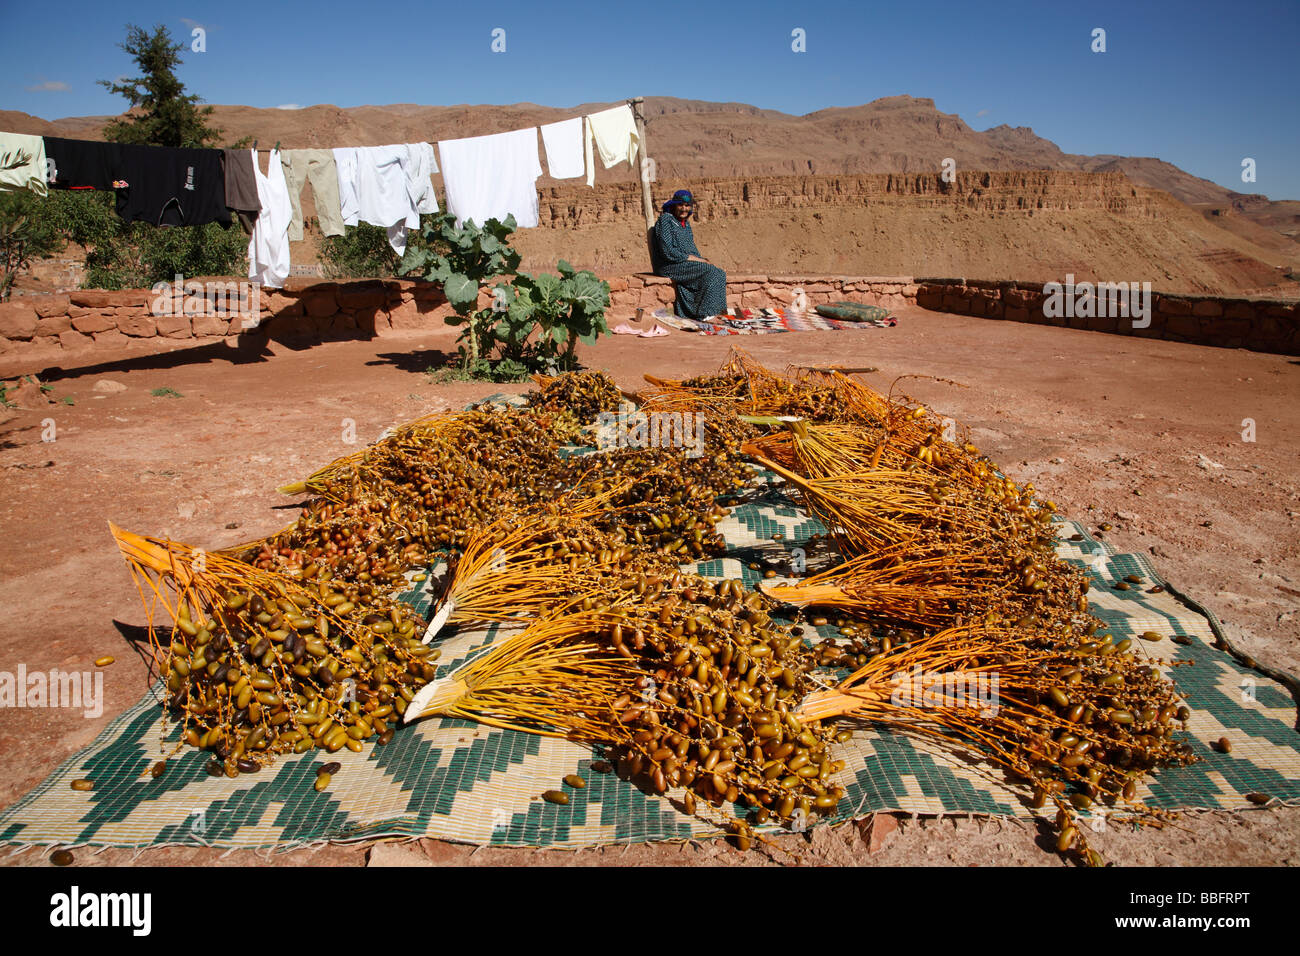 africa north africa morocco tinerhir atlas mountains dates